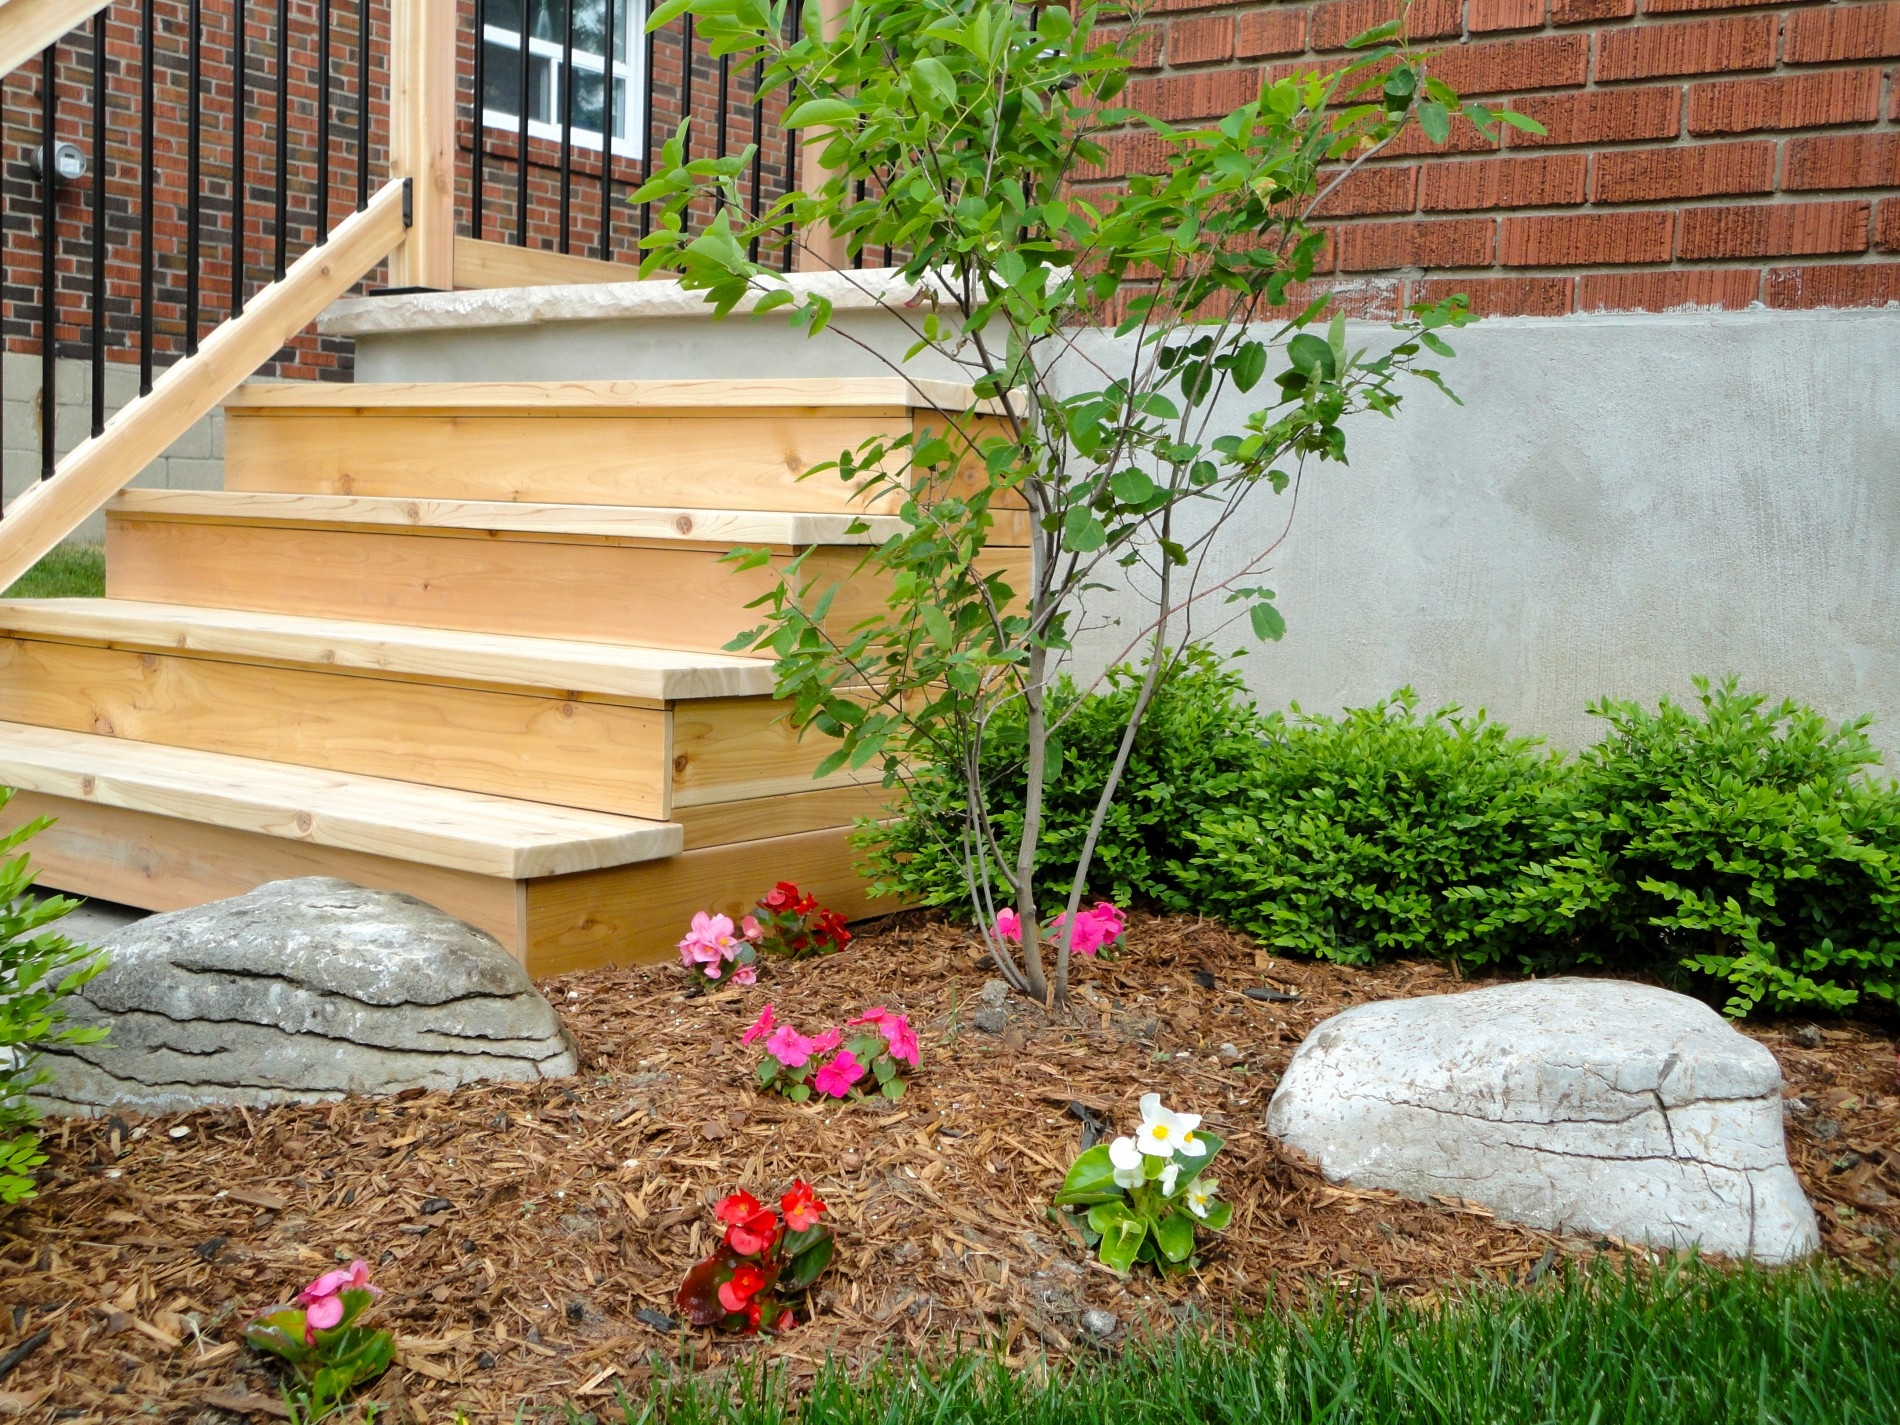 Amsterdam Ave. – East York Toronto Front Entrance & Landscaping - Featured Image